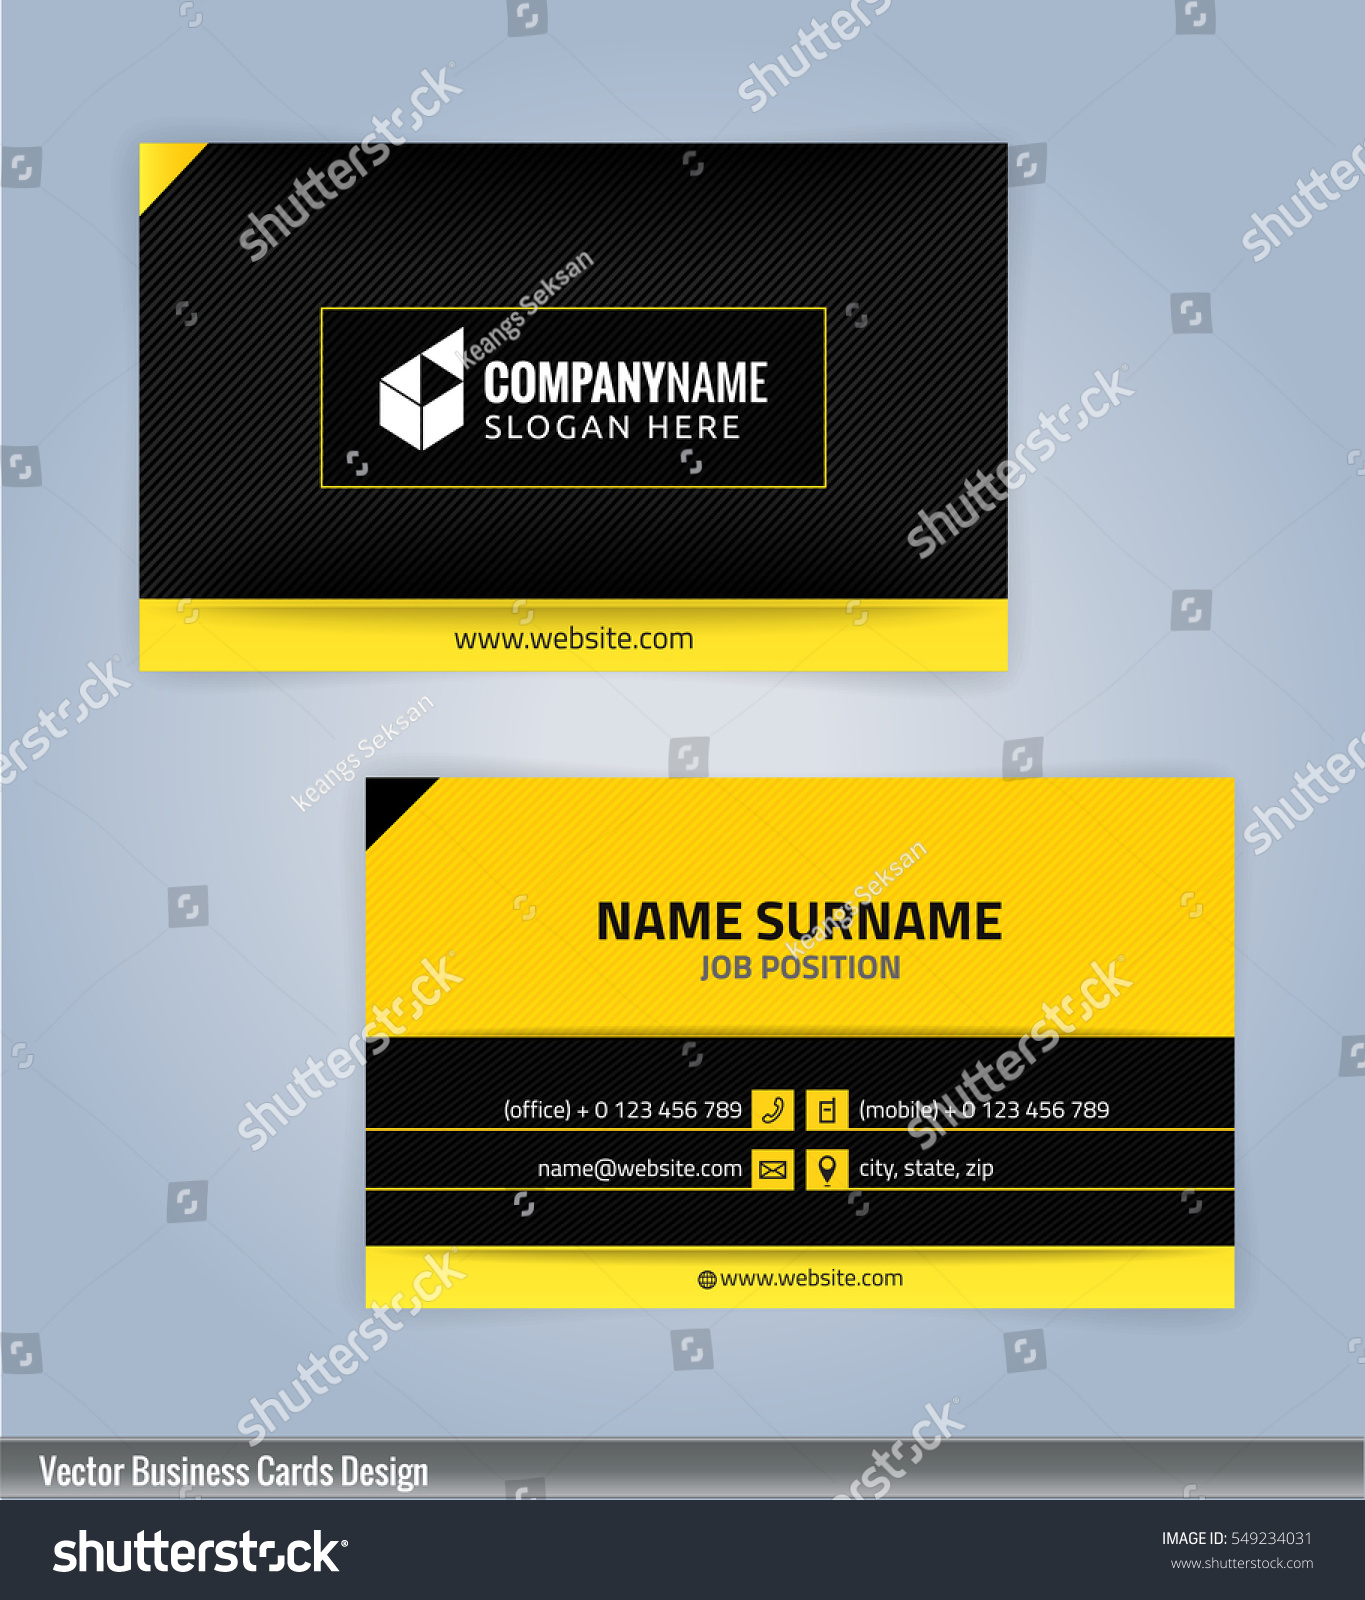 business card templates for designing your own cards 50 free